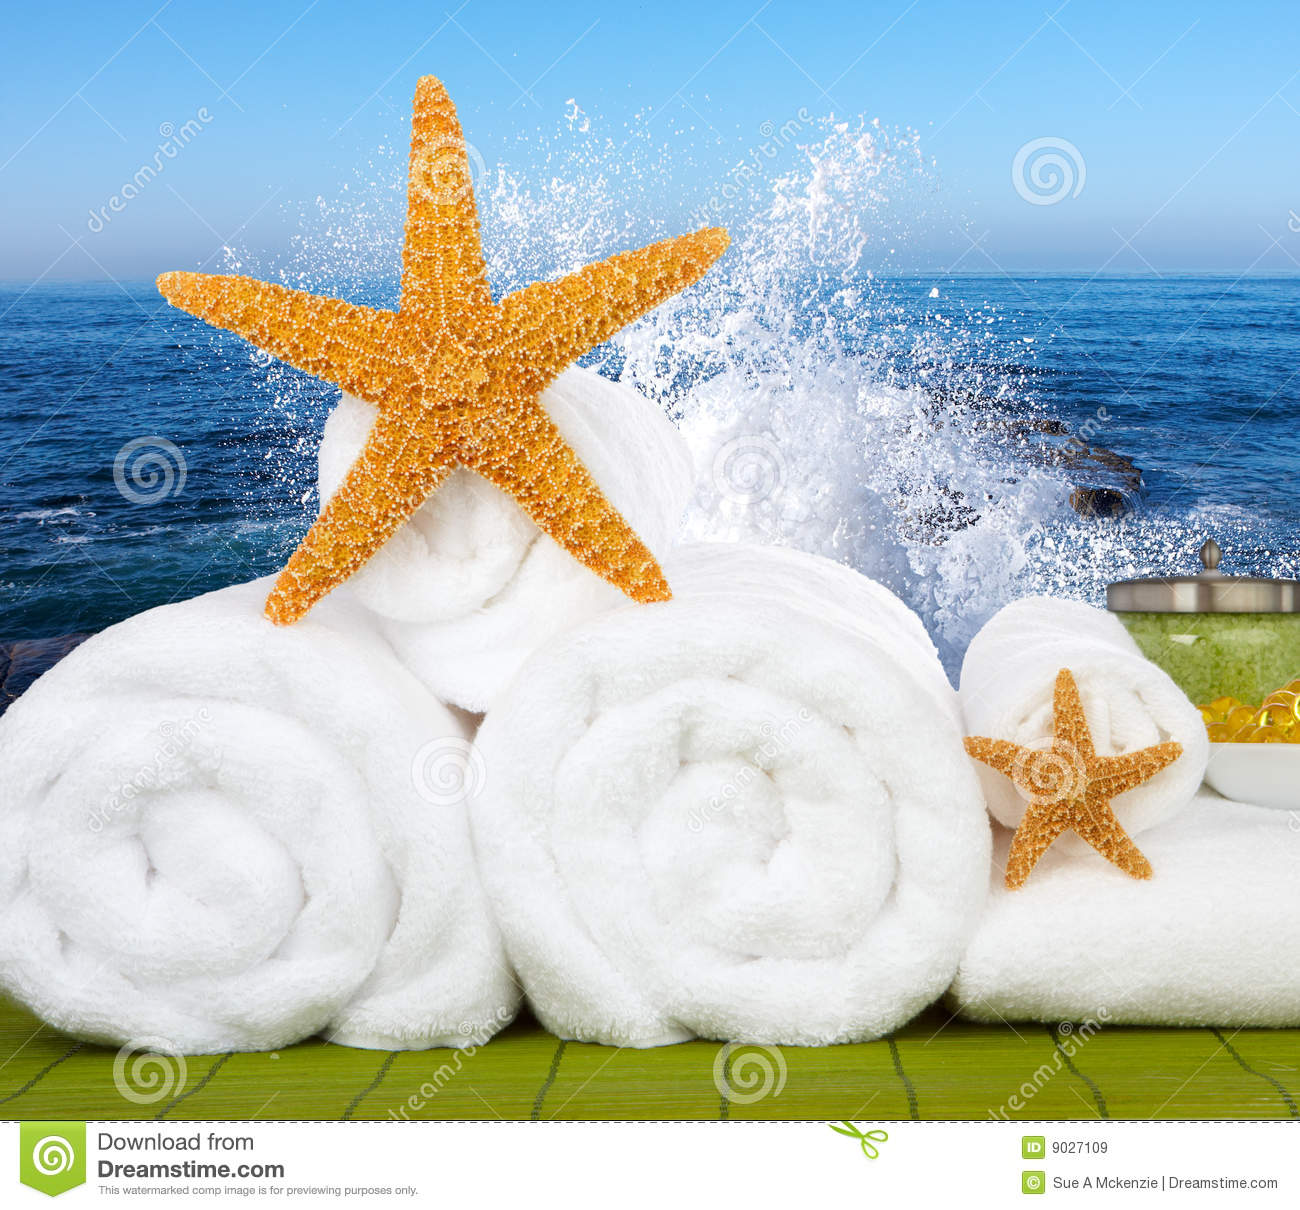 Day Spa Still Life With Starfish Stock Photography